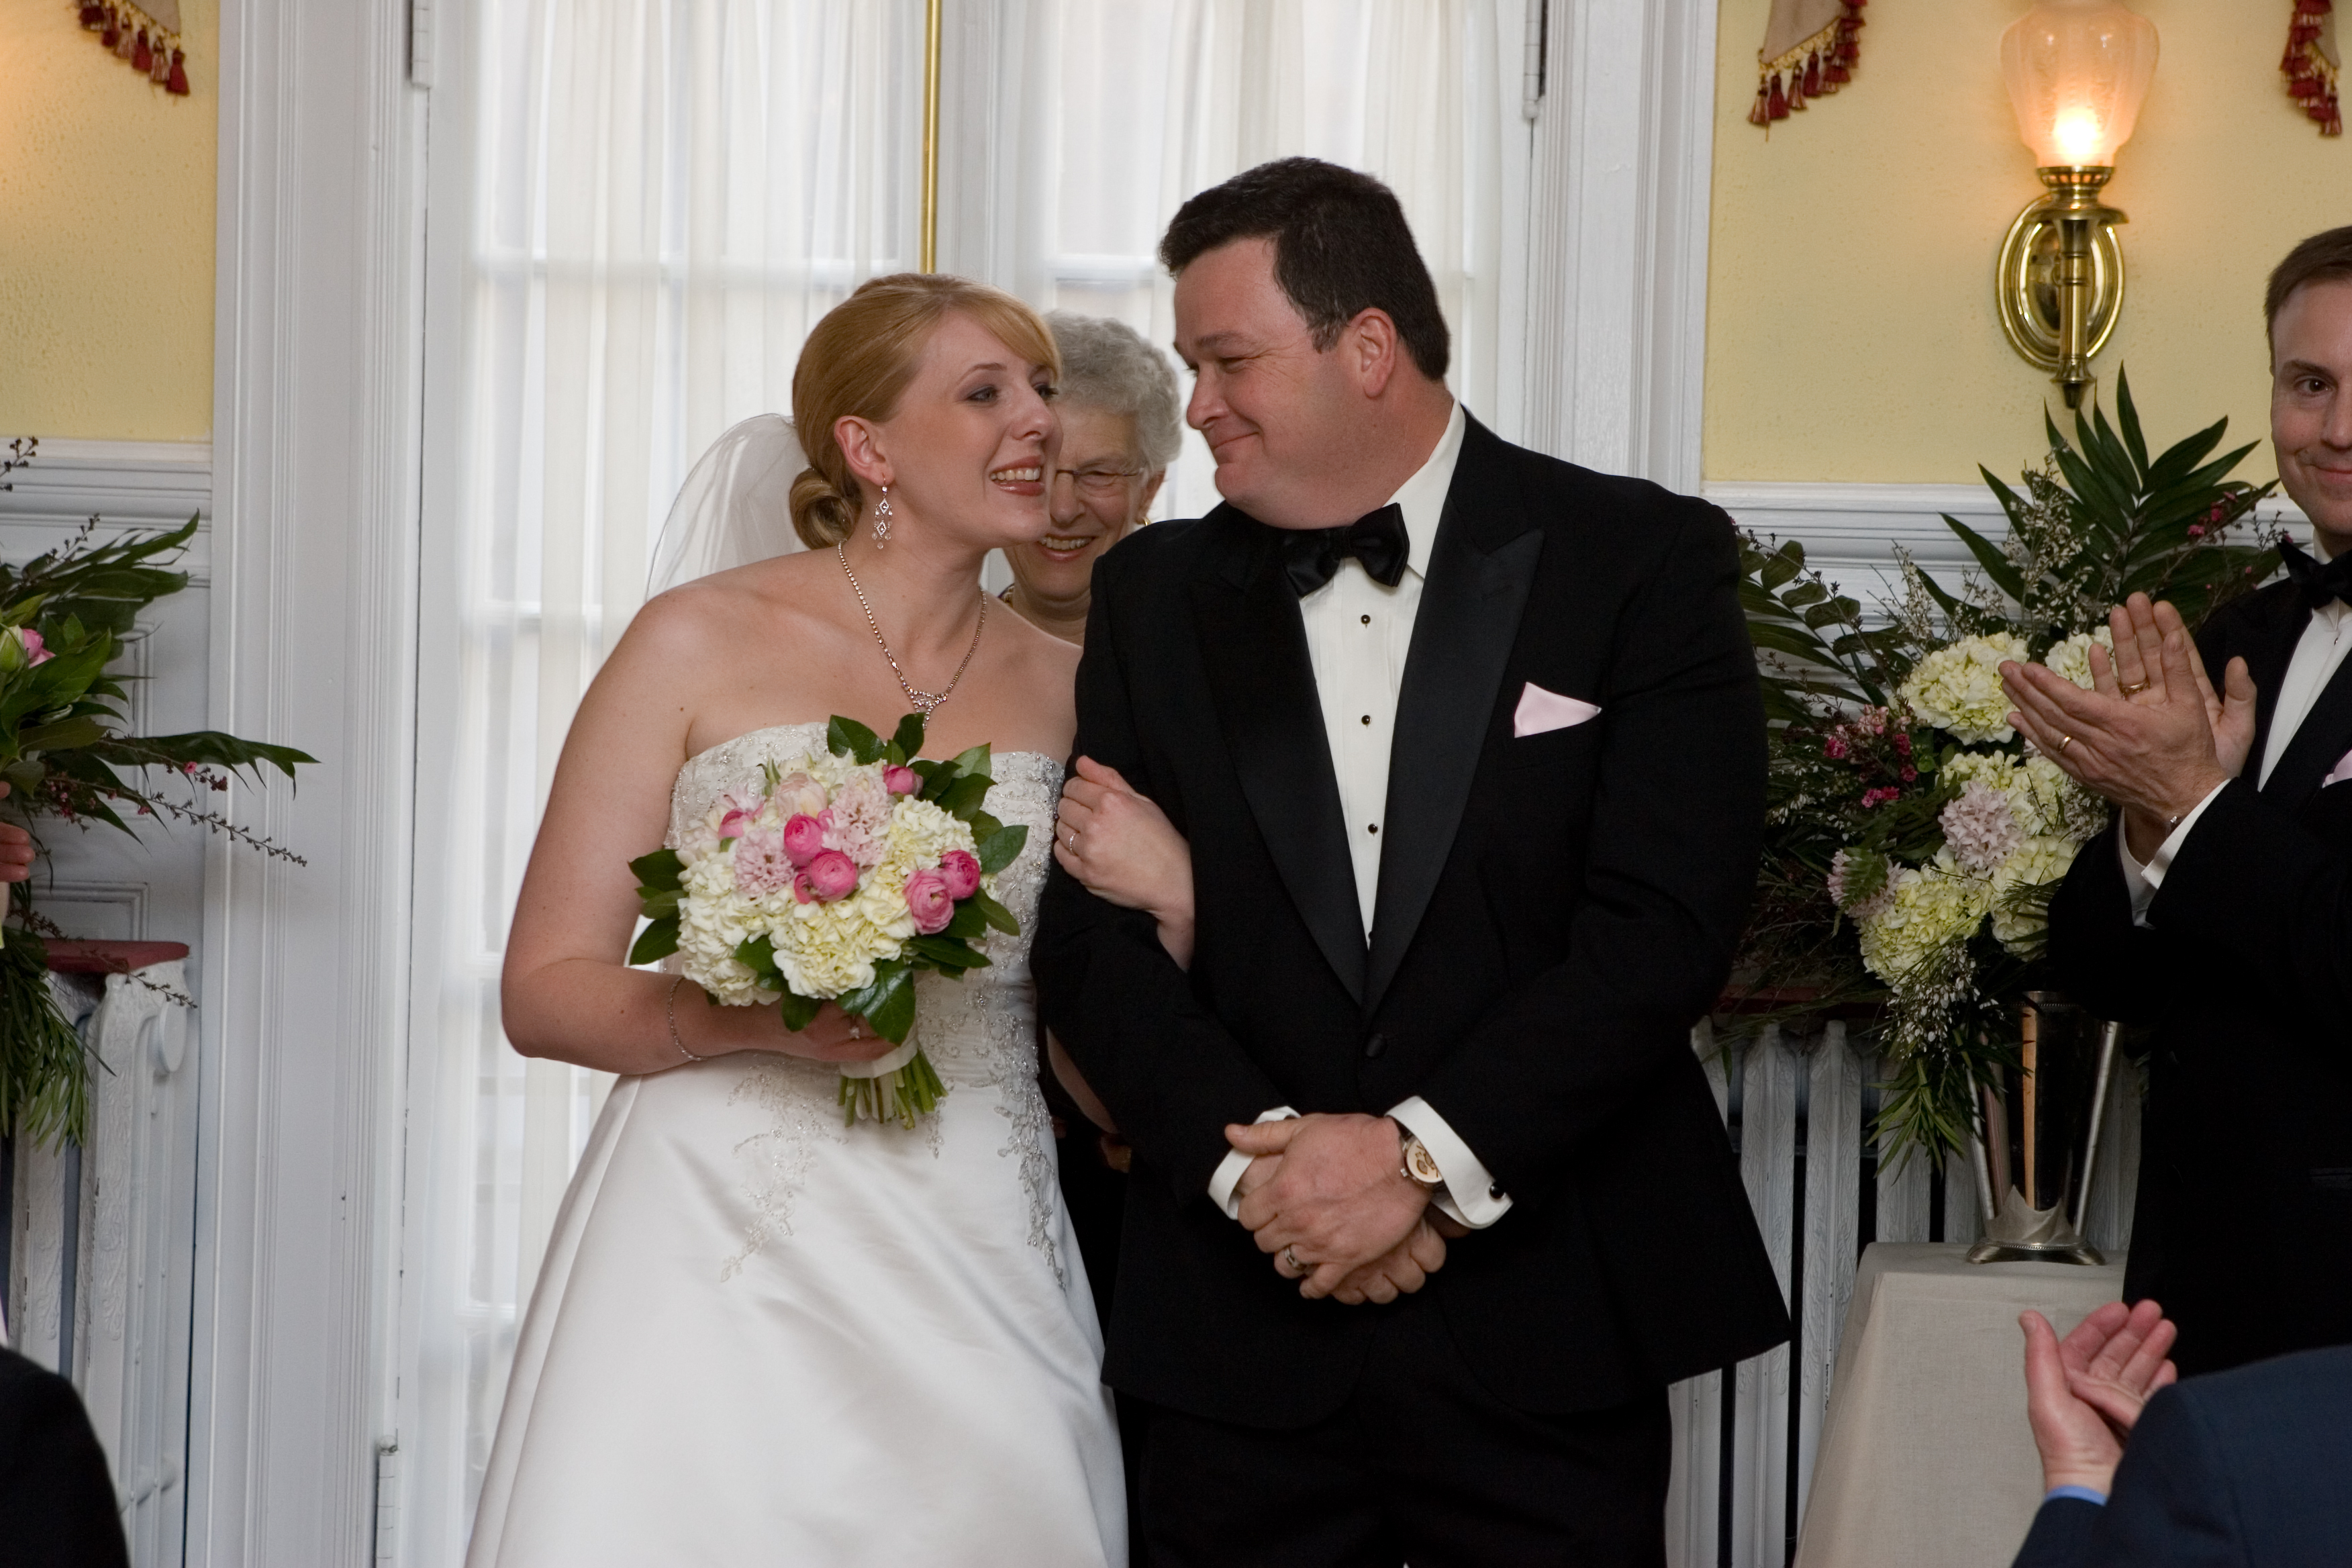 American news womens club dc wedding ceremony